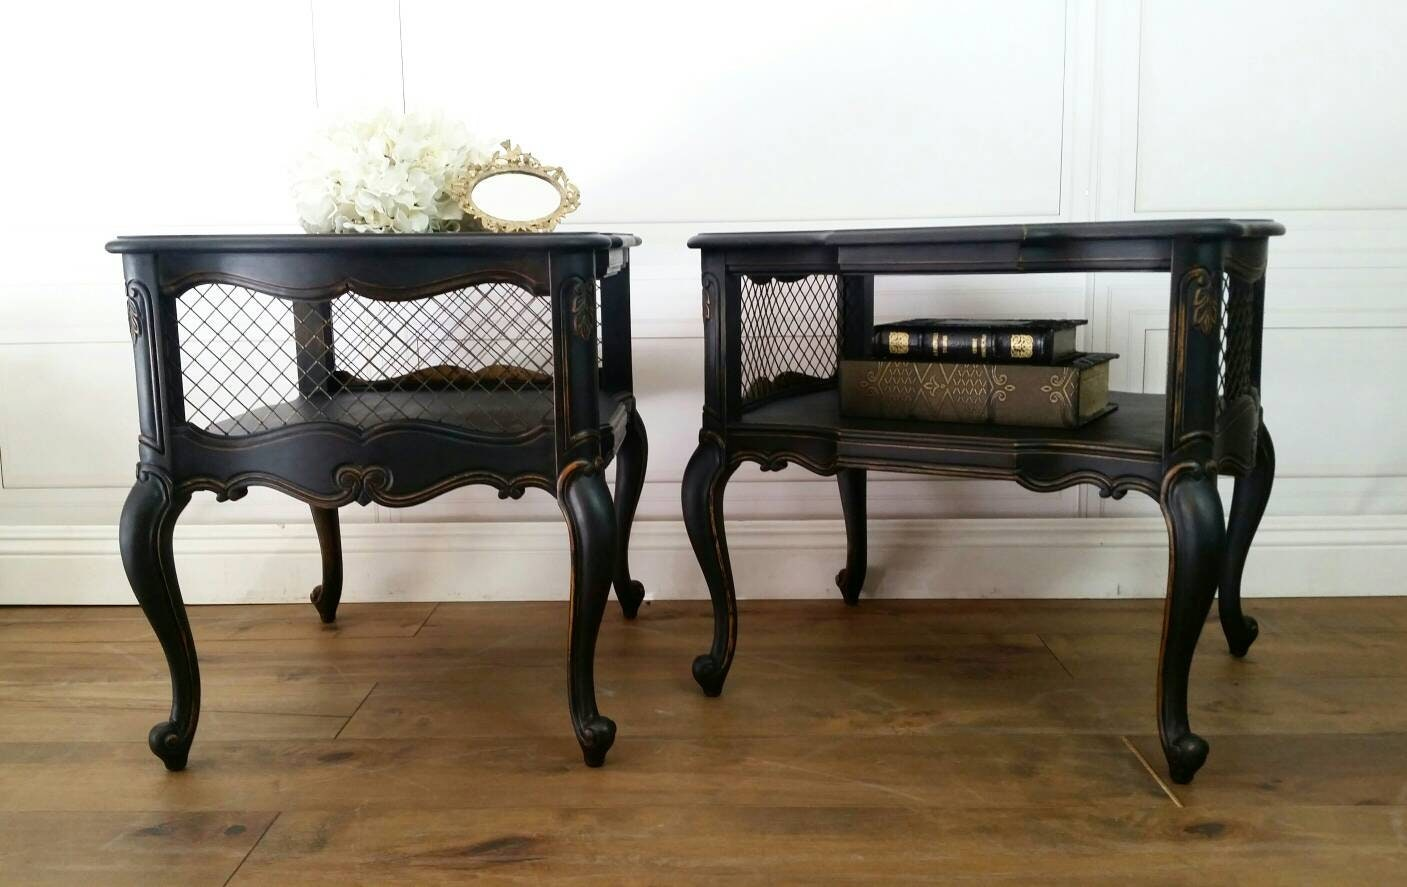 Unavailable Vintage Weiman Black Shelf End Tables Nightstands Pair Glam Hollywood French Provincial Bedside Boudoir Accent